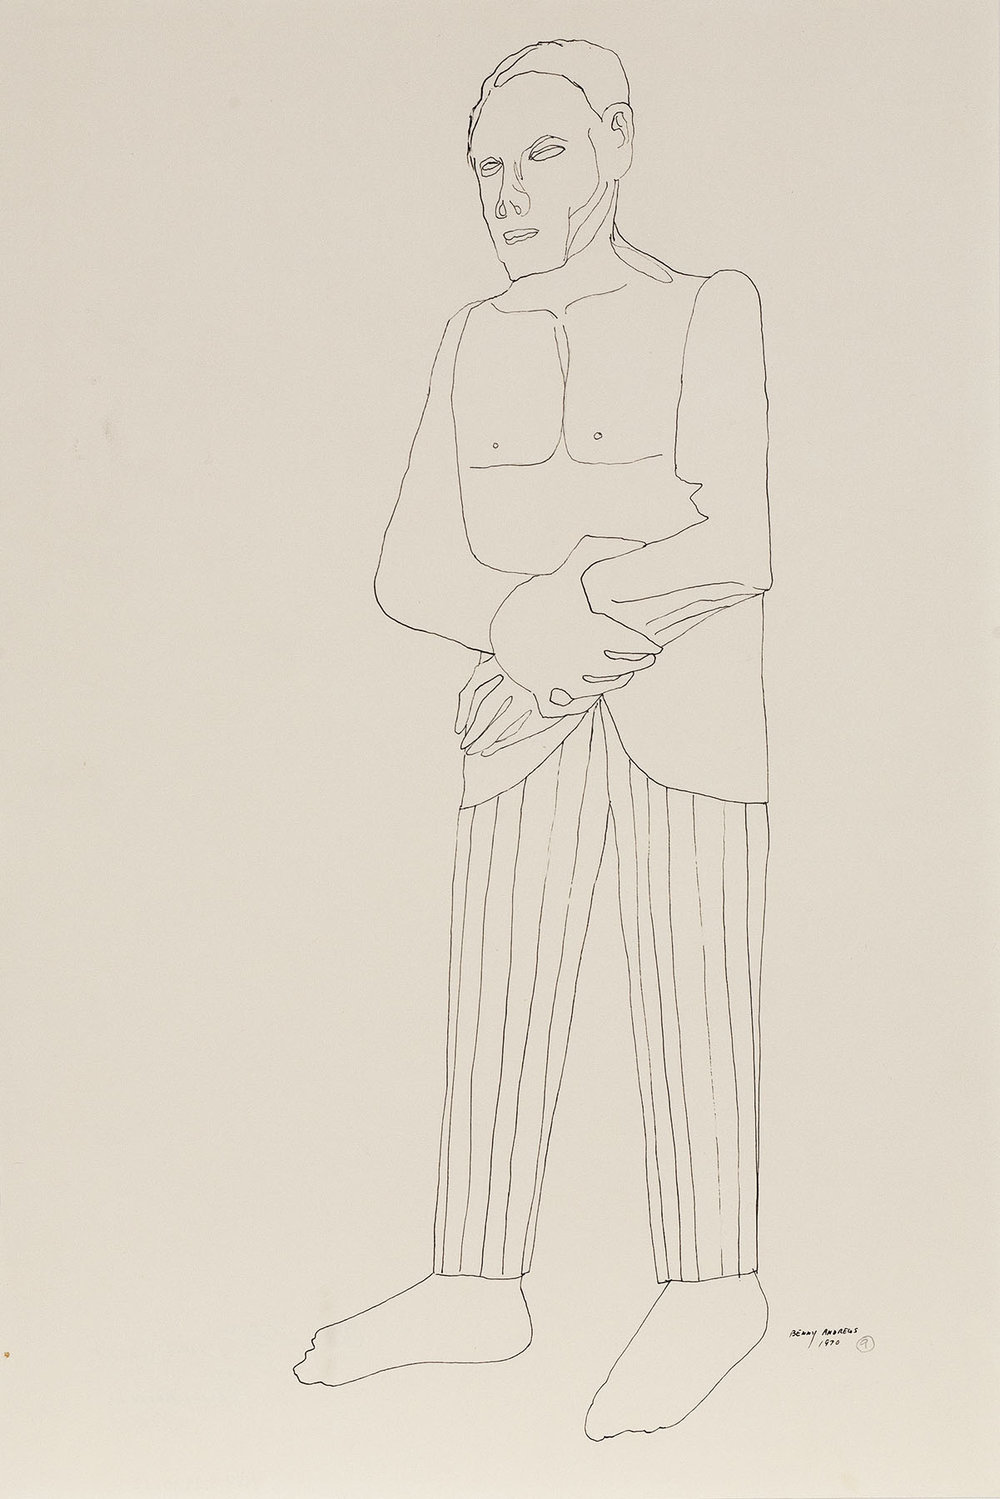 Groom (Study for Symbols),  1970 pen and ink on paper 18 x 12""